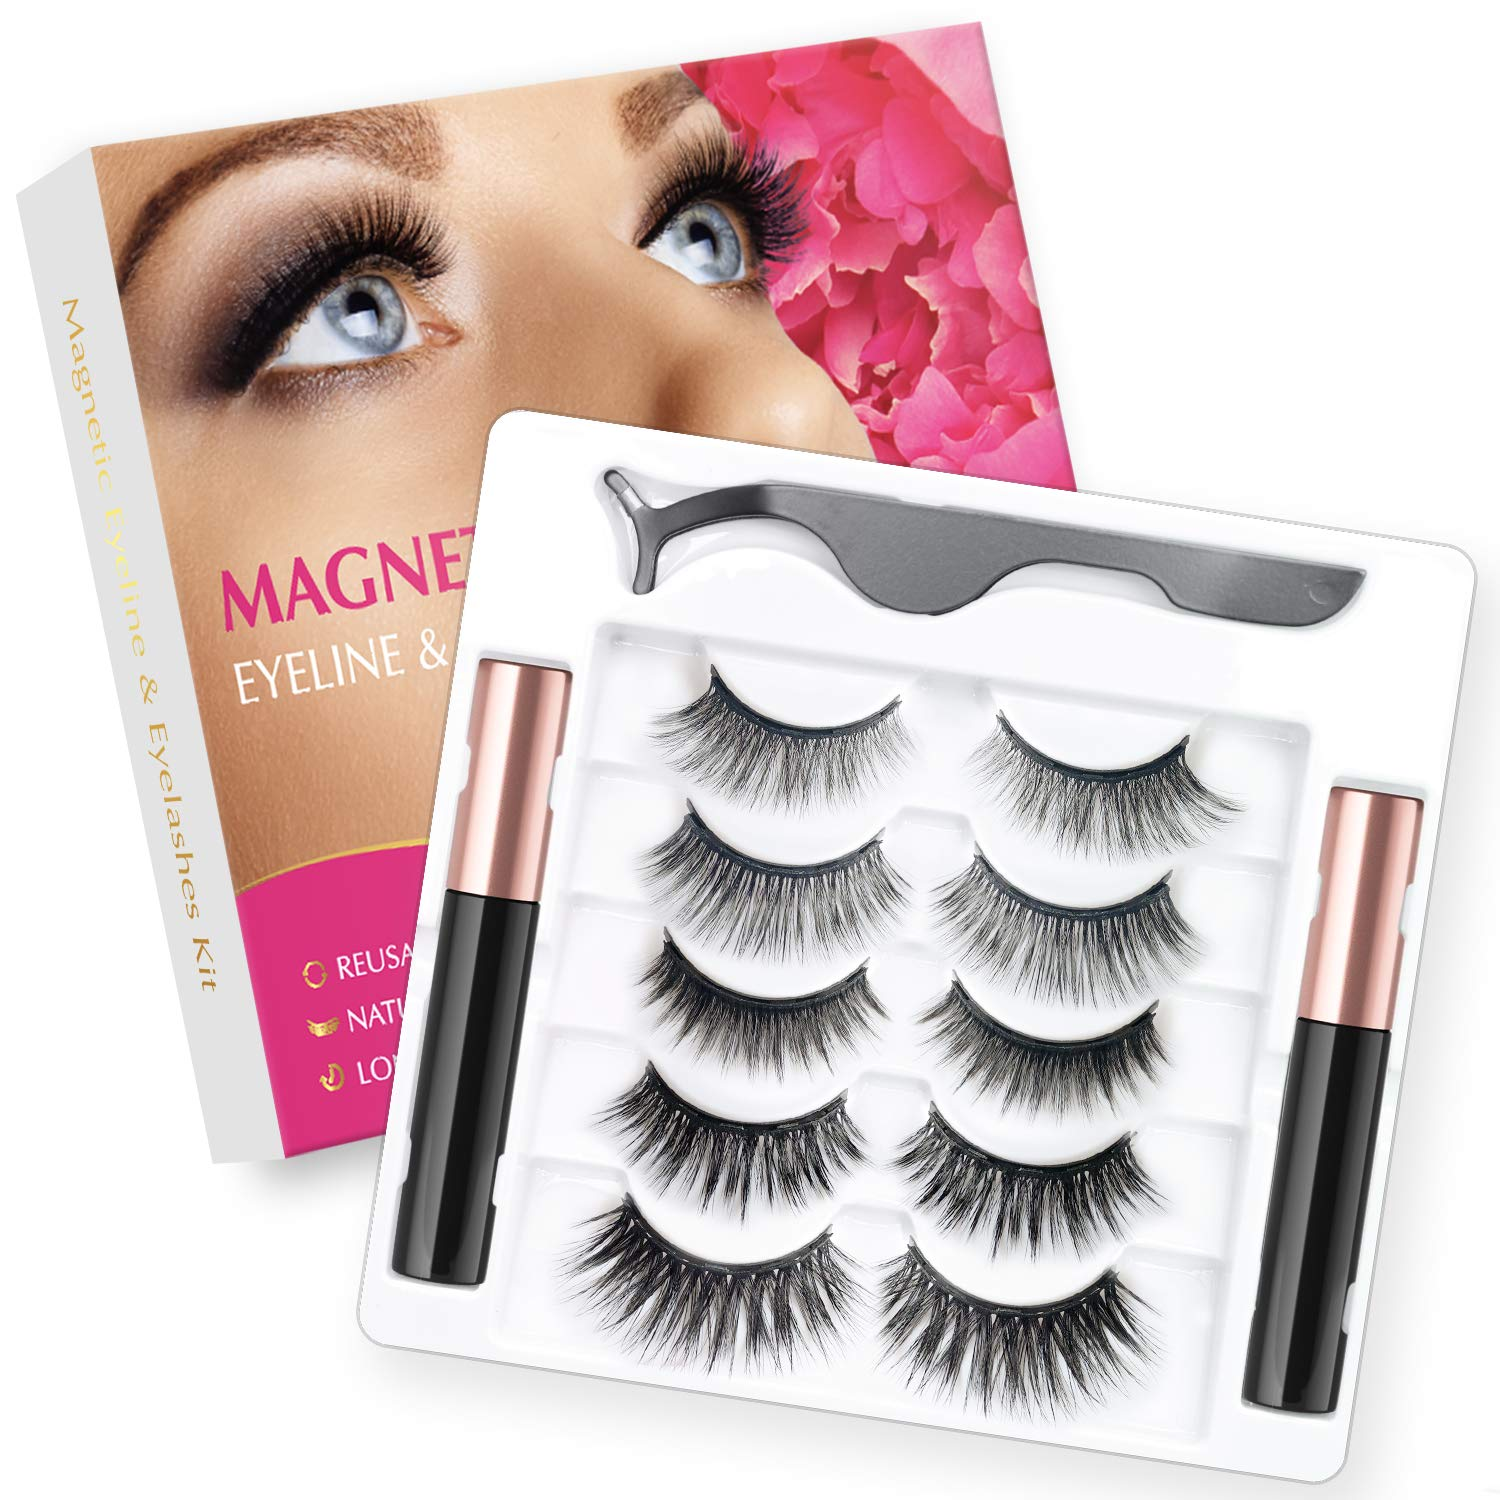 Visismile Magnetic Eyelashes and Magnetic Eyeliner Kit, 5 Pairs of Different Styles Reusable 3D Magnetic Eyelashes with 2 Special Magnetic Eyeliners and Tweezers, with Natural Look